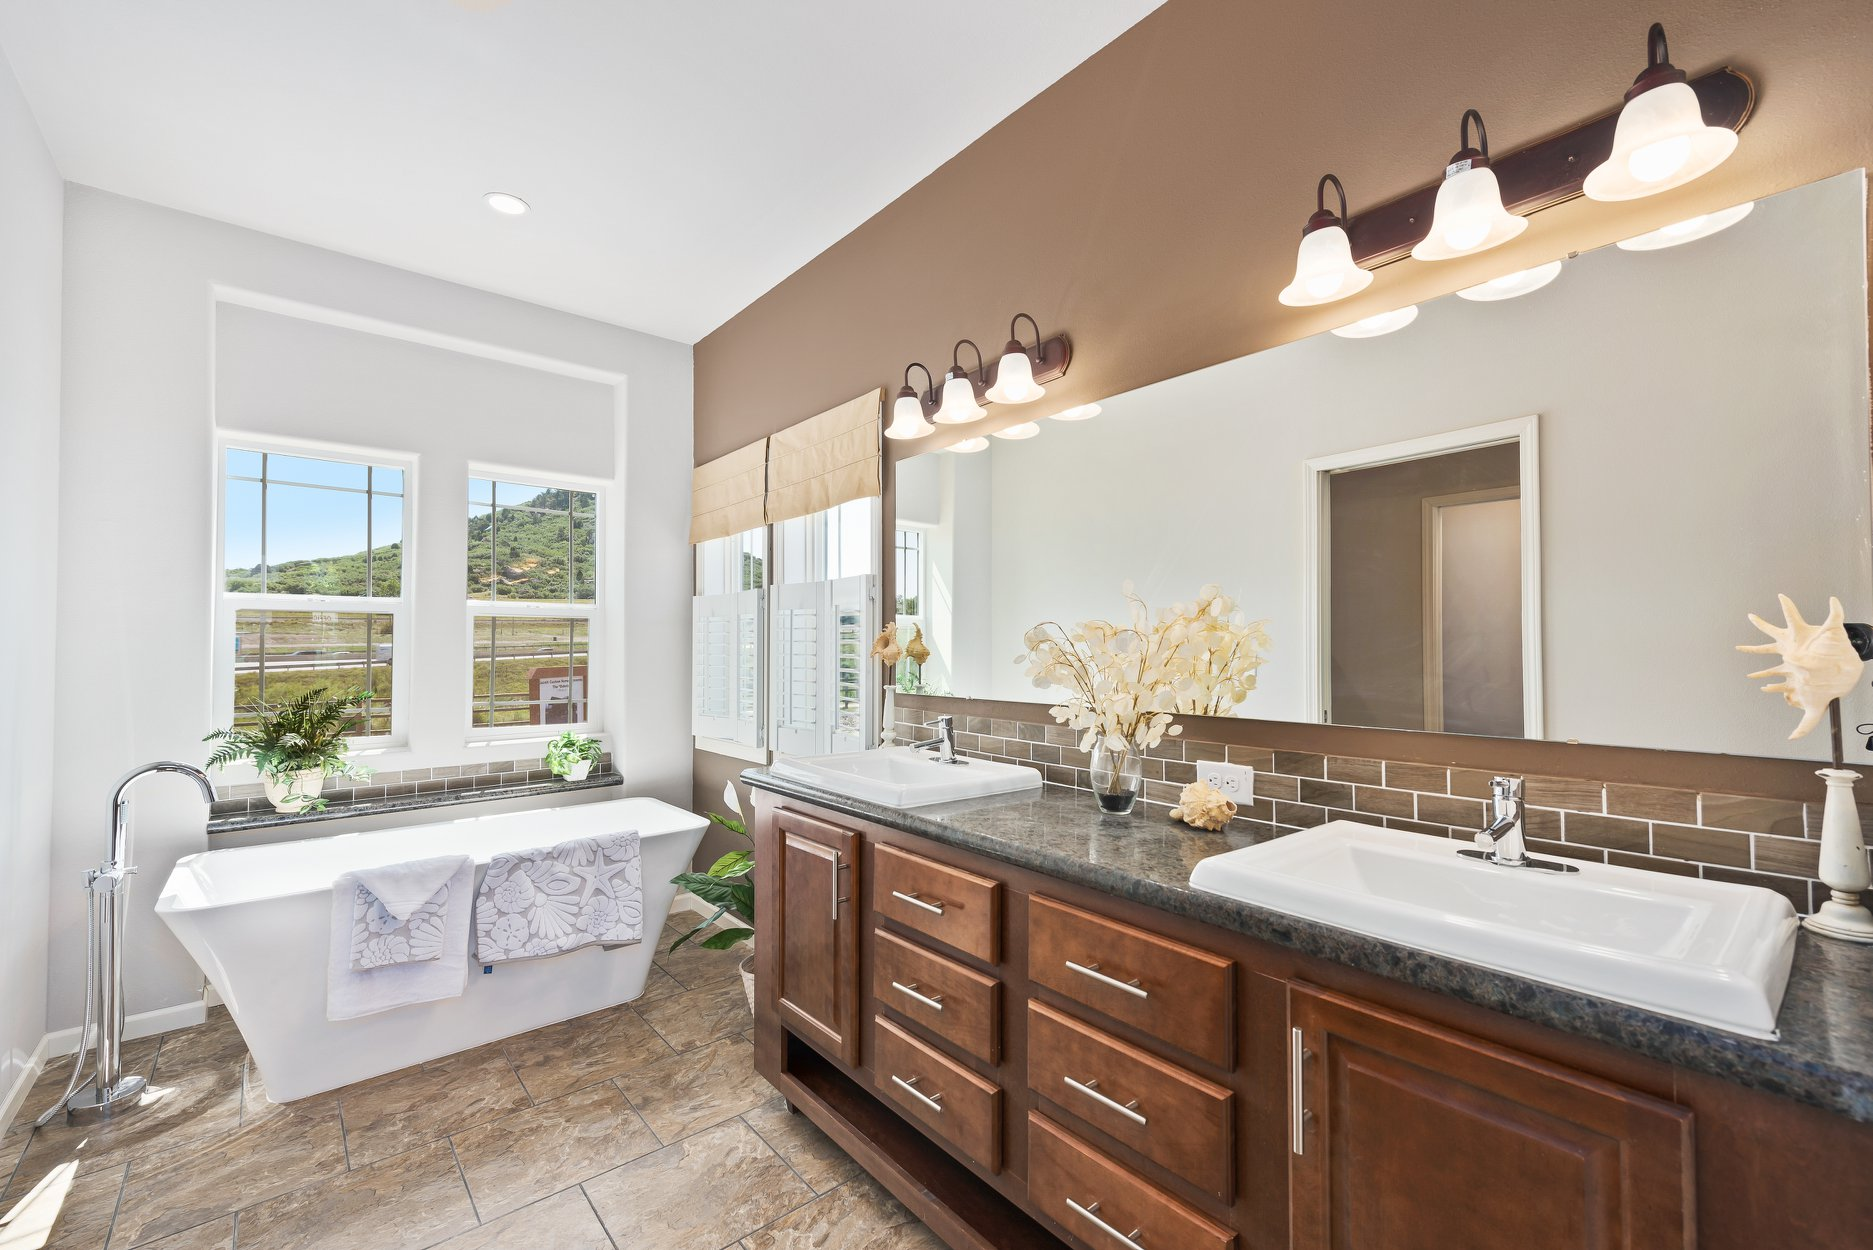 How to Choose the Right Bathtub for Your Manufactured Home